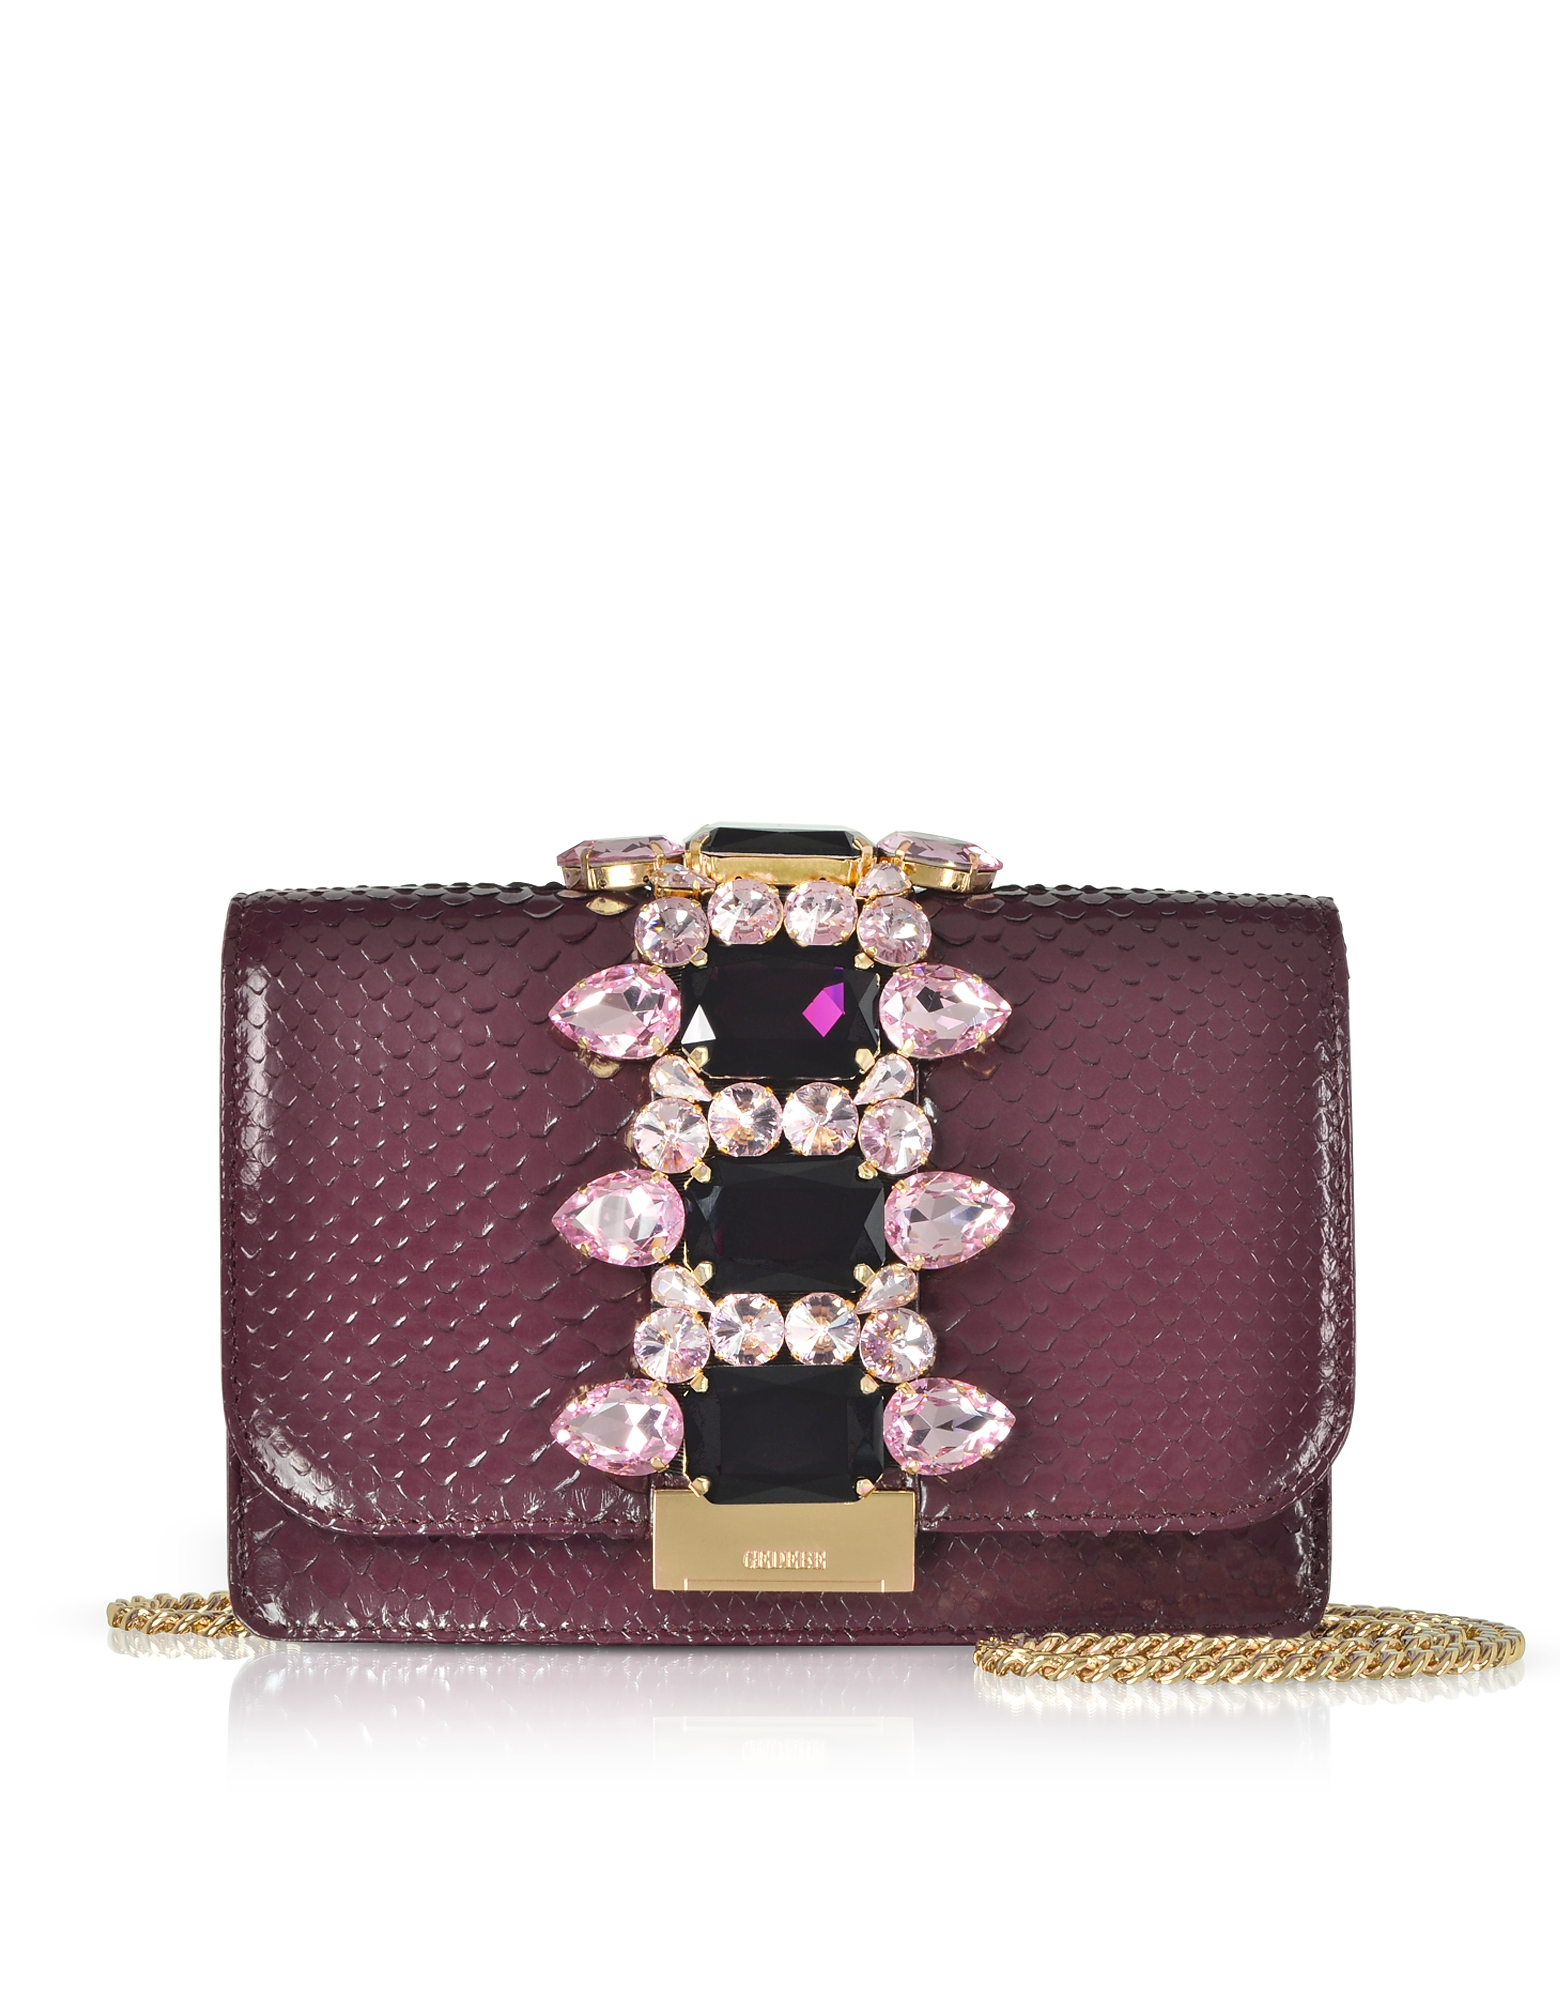 Cliky Purple Python Clutch w/Crystals and Chain Strap